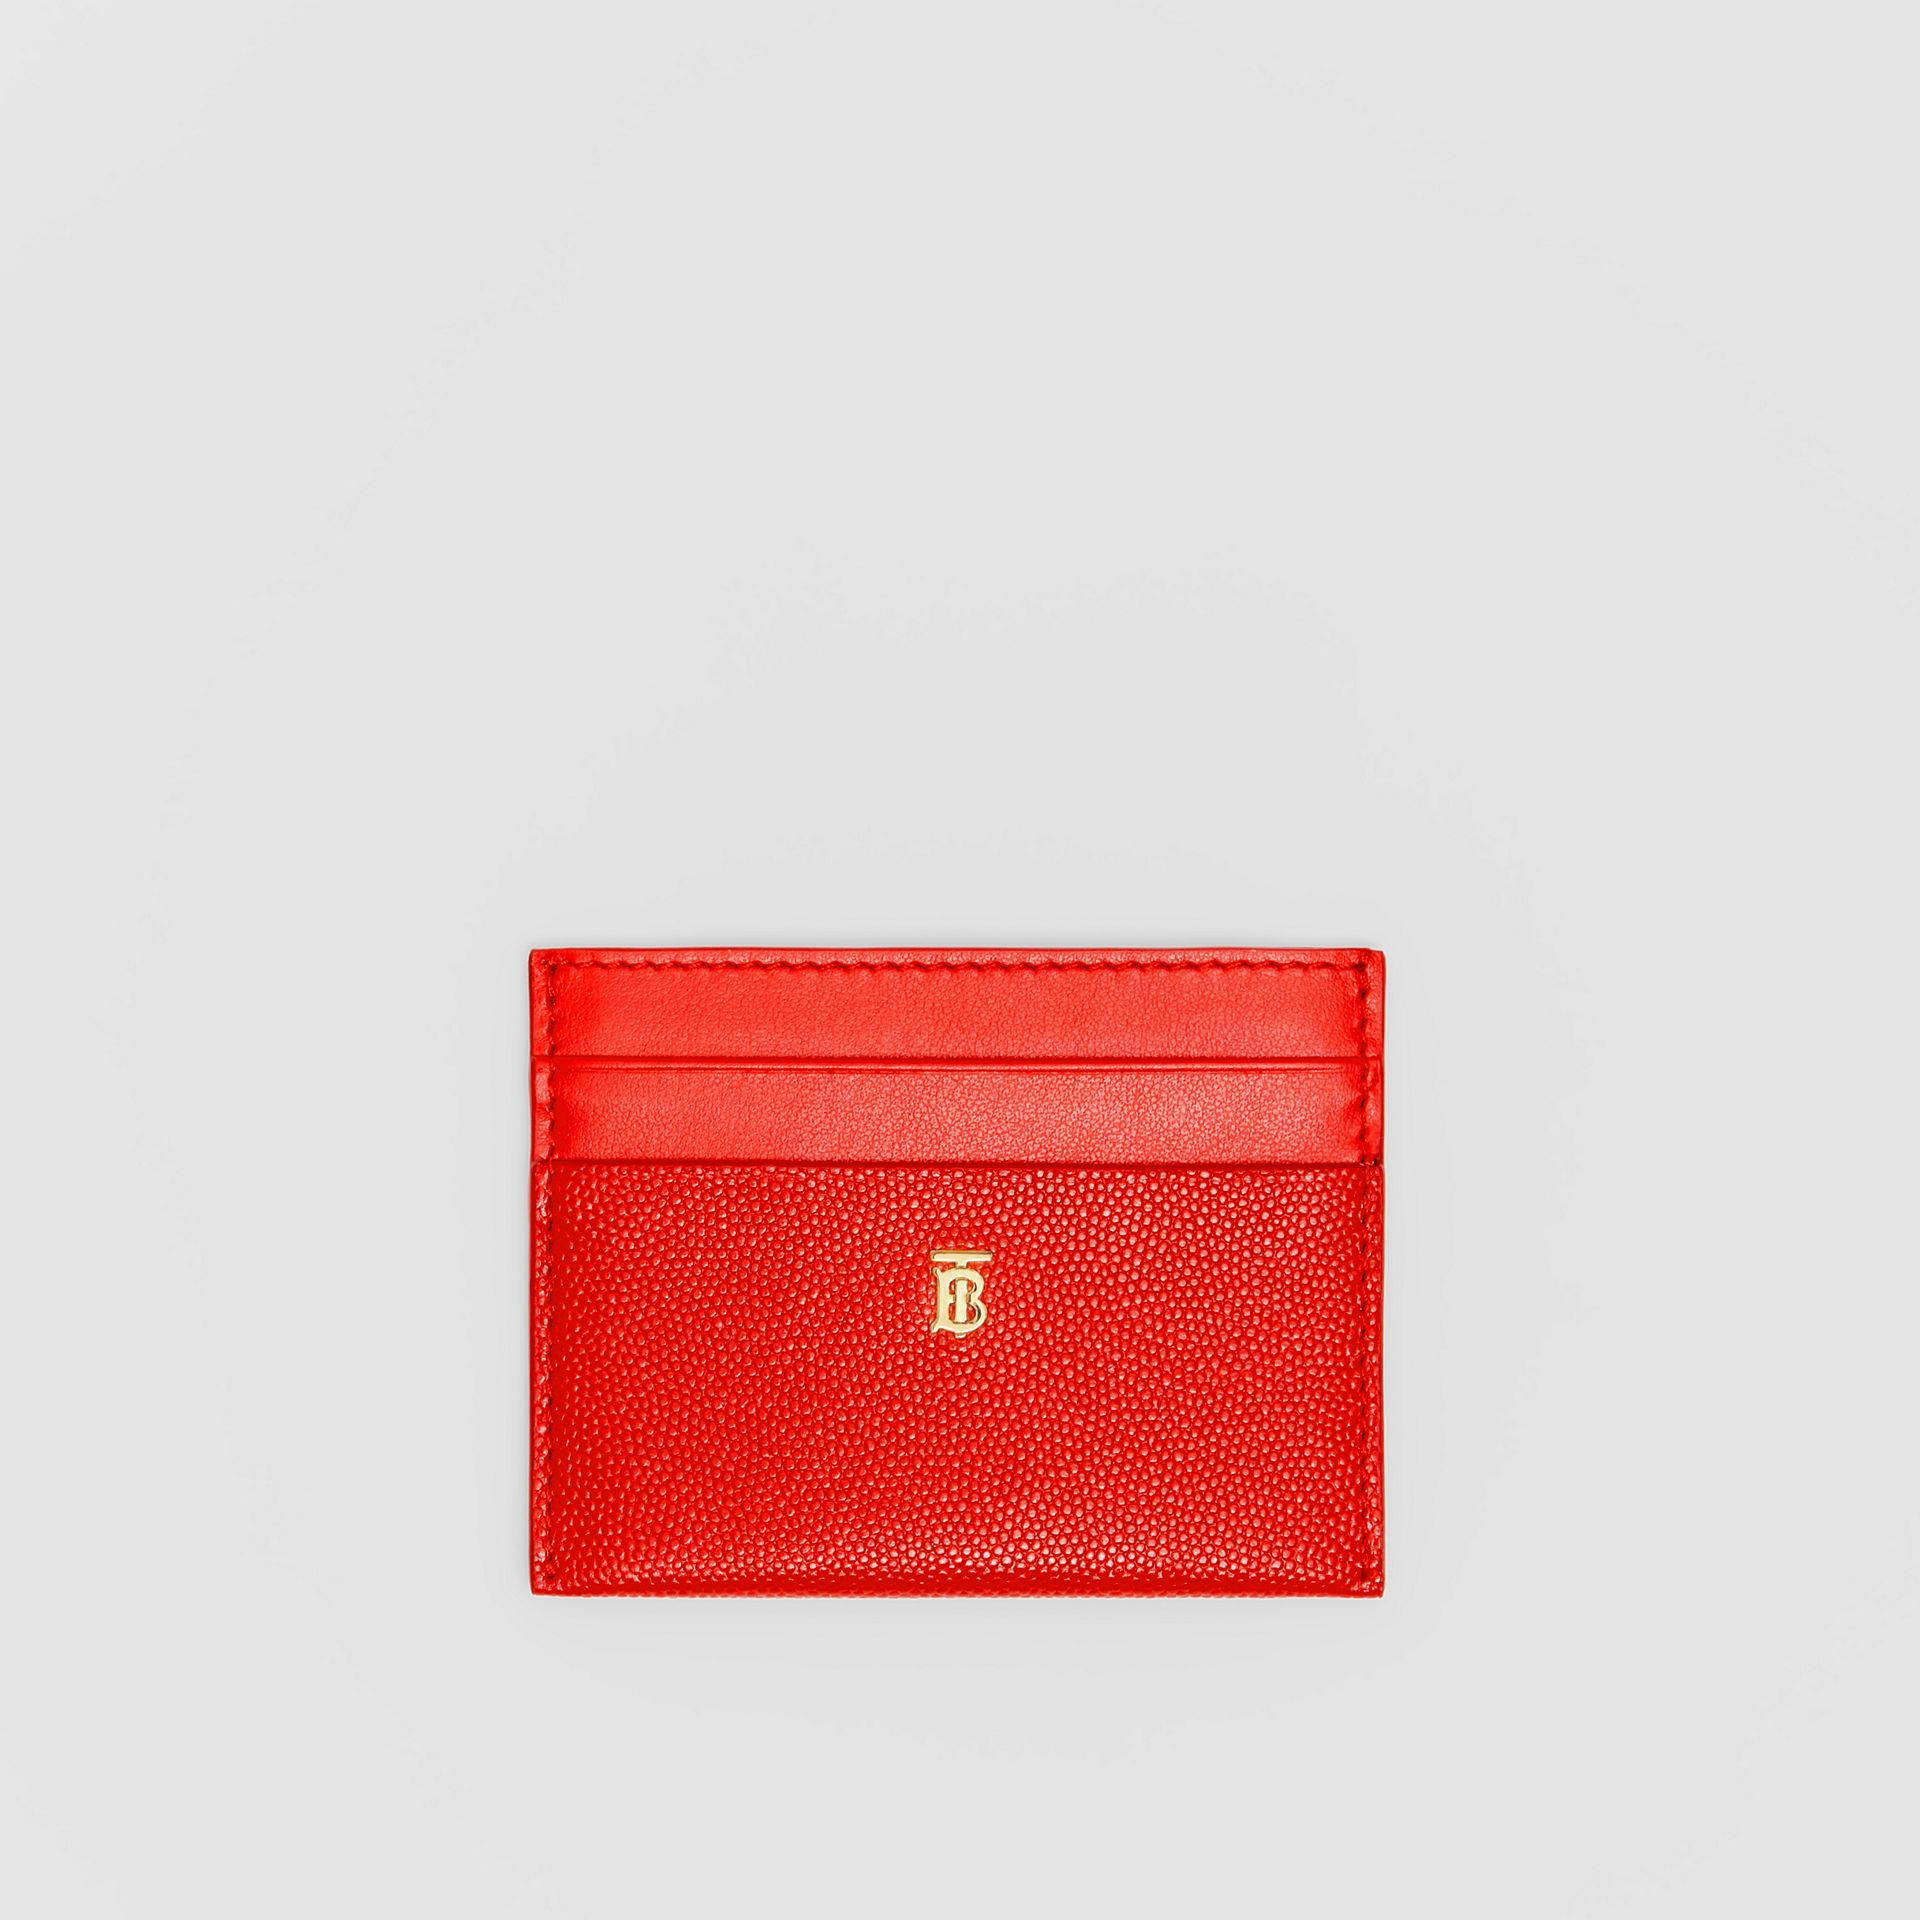 Monogram Motif Leather Card Case in Bright Red - Women | Burberry Hong Kong S.A.R - gallery image 0